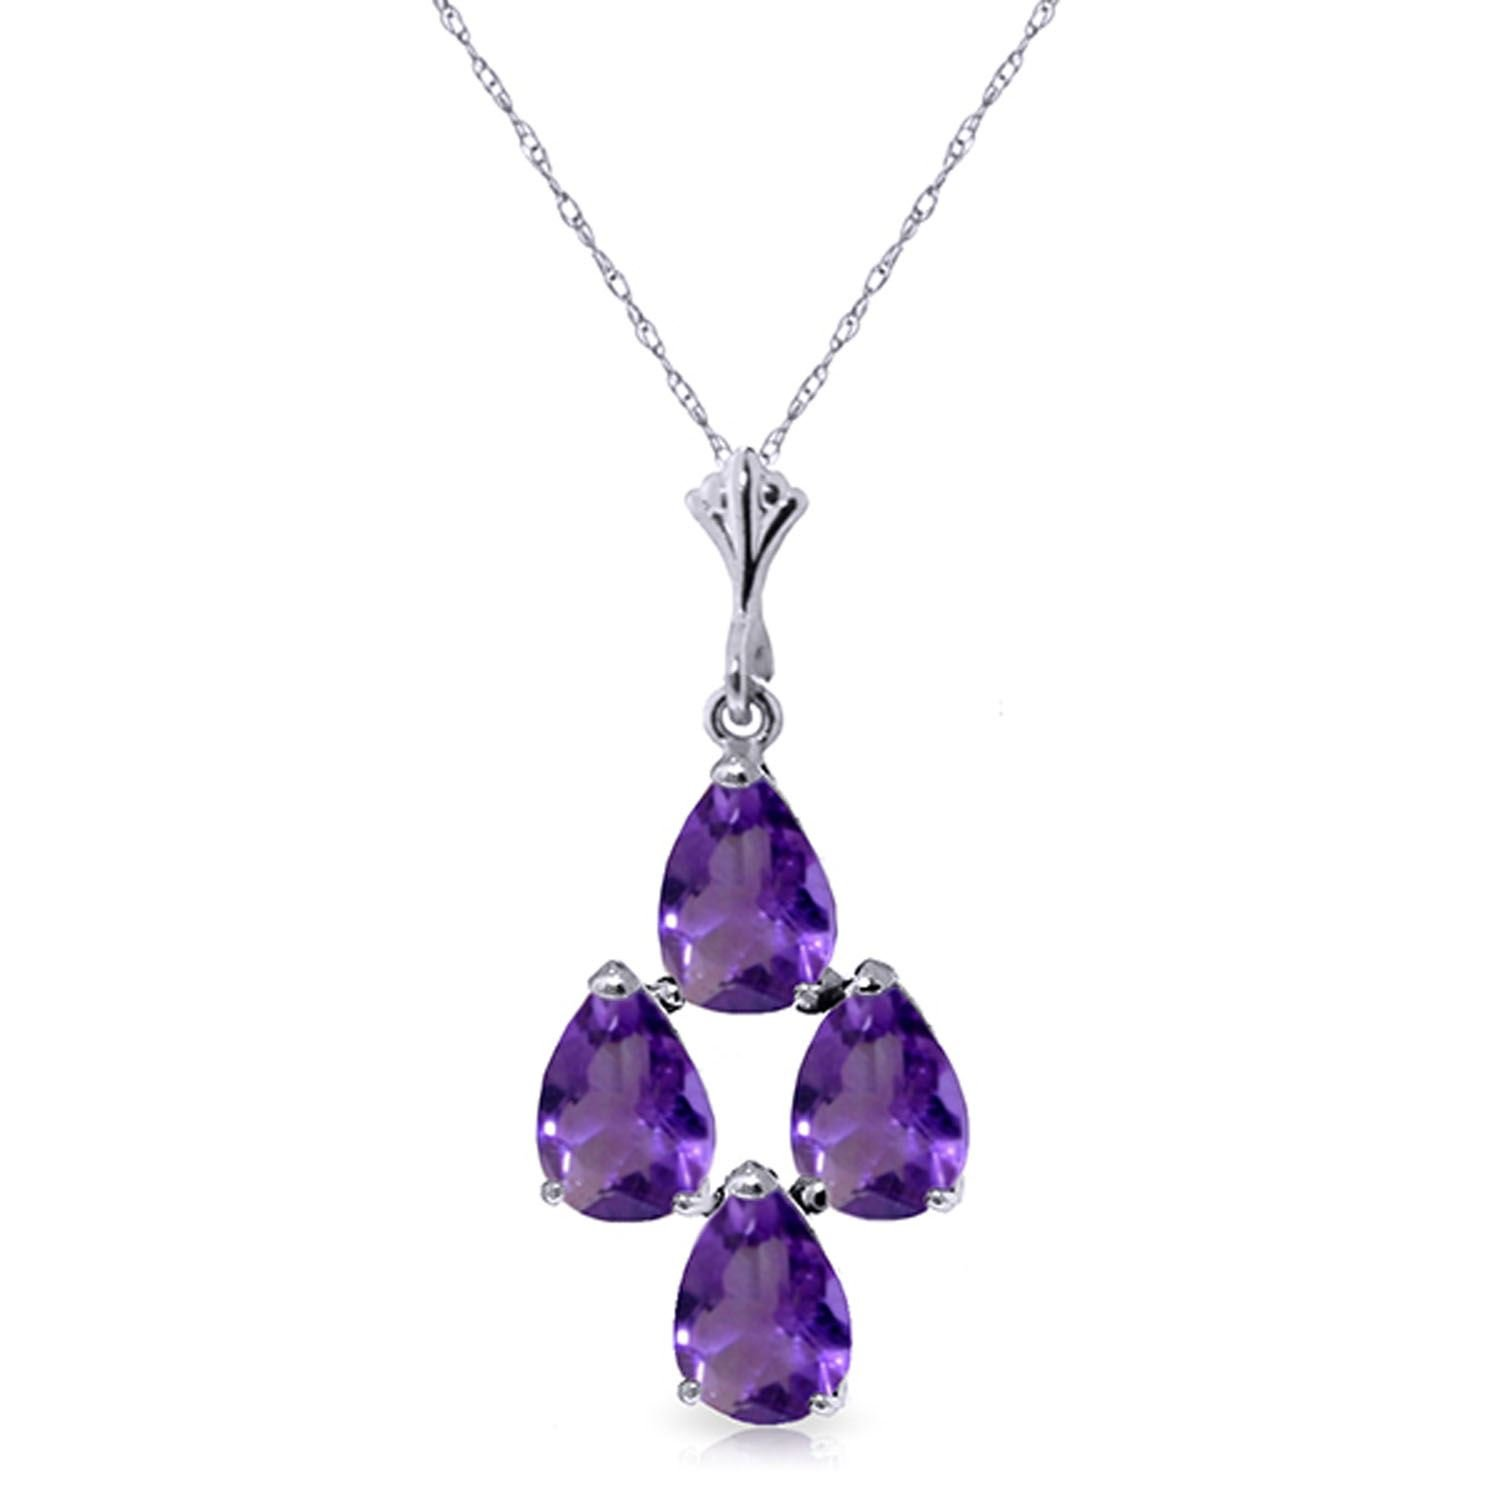 ALARRI 1.5 Carat 14K Solid White Gold Surreal Love Amethyst Necklace with 18 Inch Chain Length